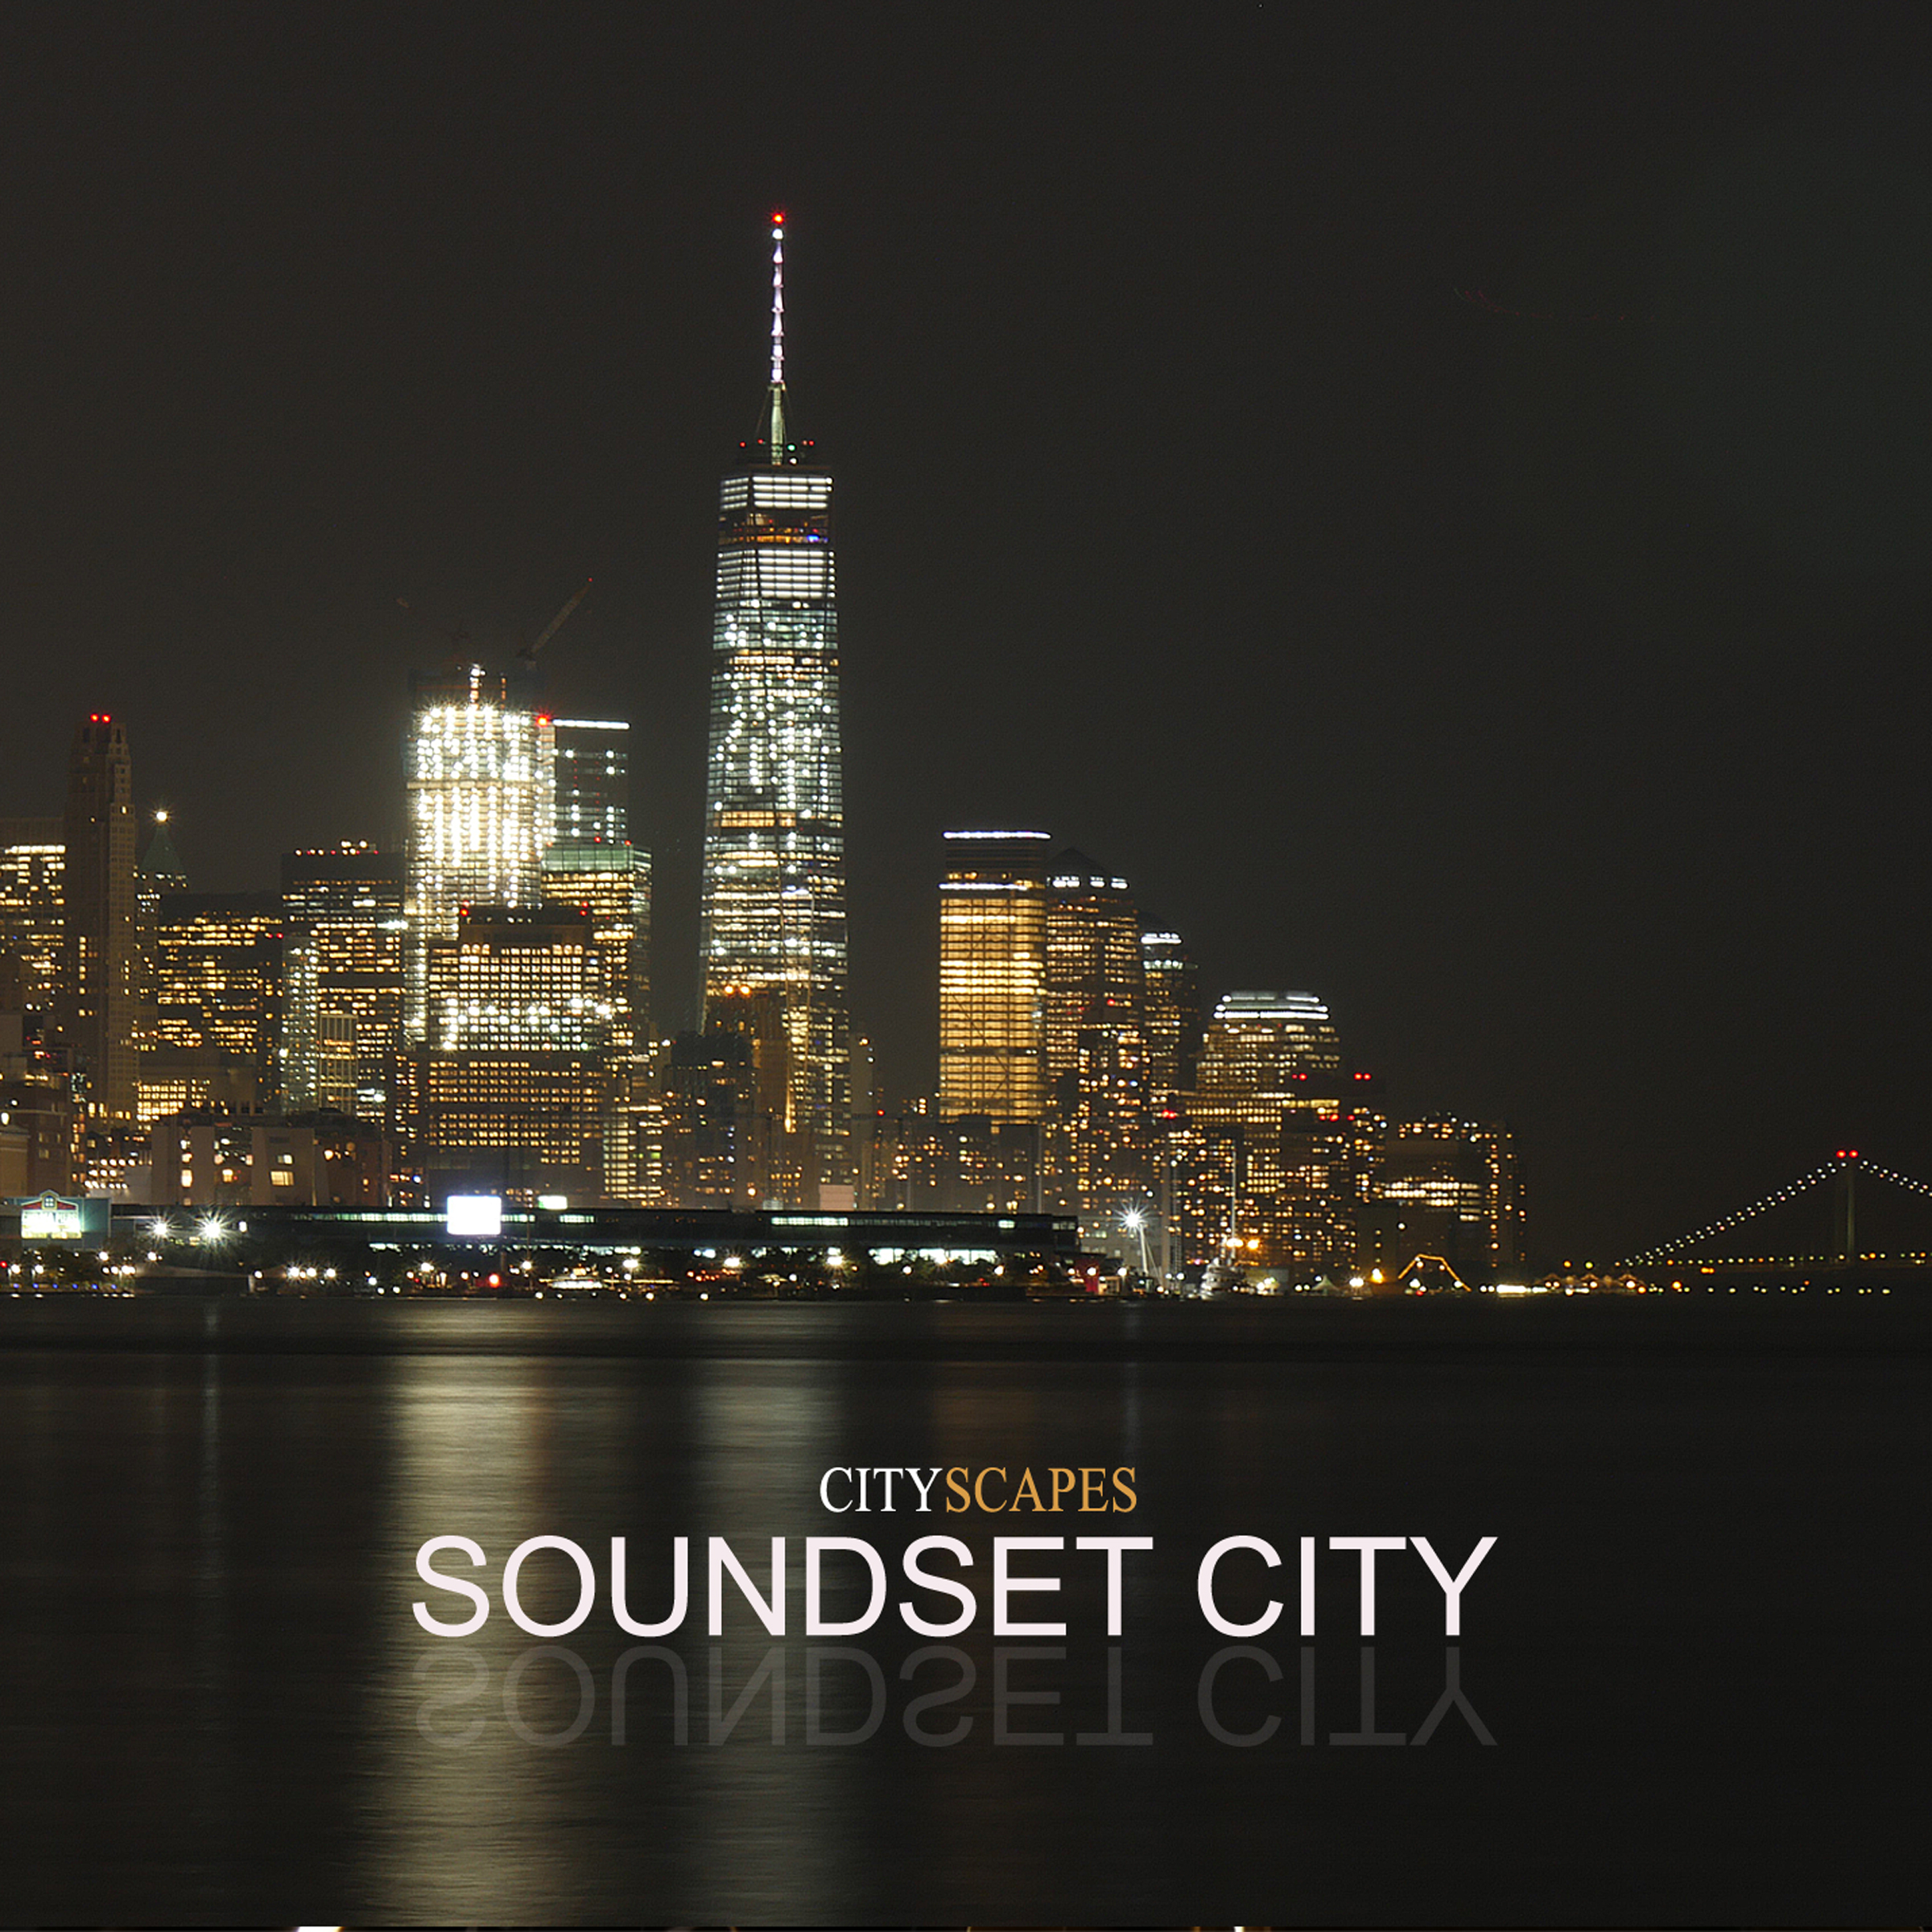 SOUNDSET CITY-I Wait For You (vocal Mix)